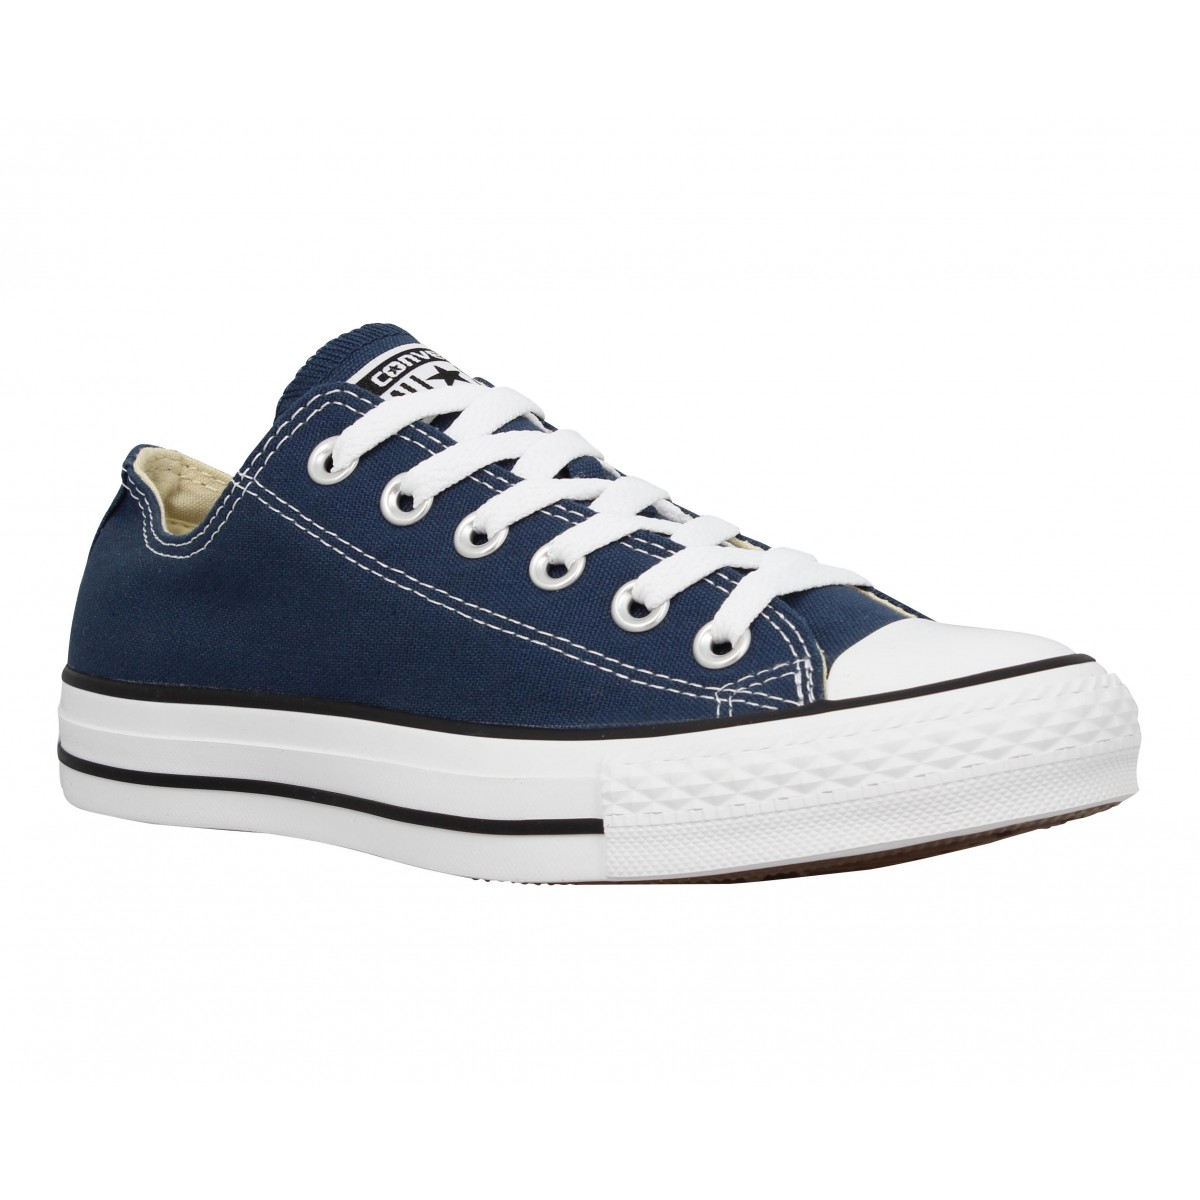 Baskets CONVERSE Chuck Taylor All Star toile Femme Marine